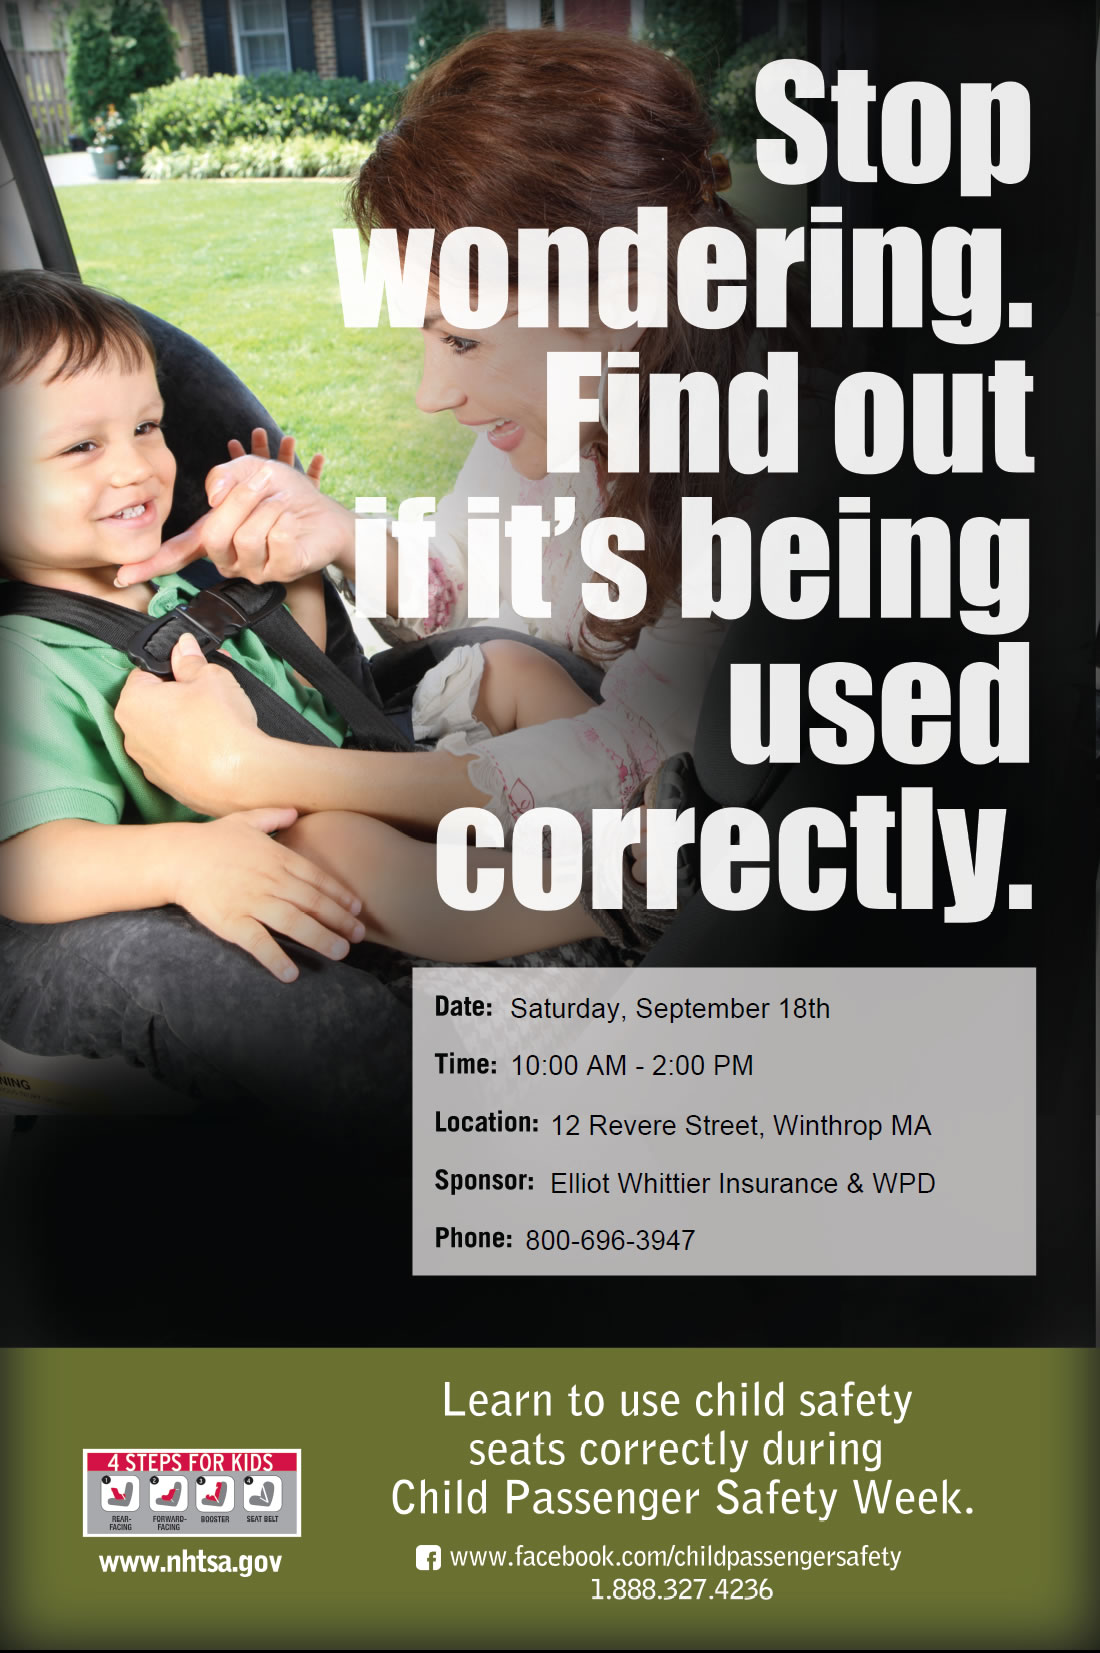 On Saturday September 18th With The Cooperation Of Winthrop Police Department Free Car Seat Inspections Will Be Held At Elliot Whittier Insurance